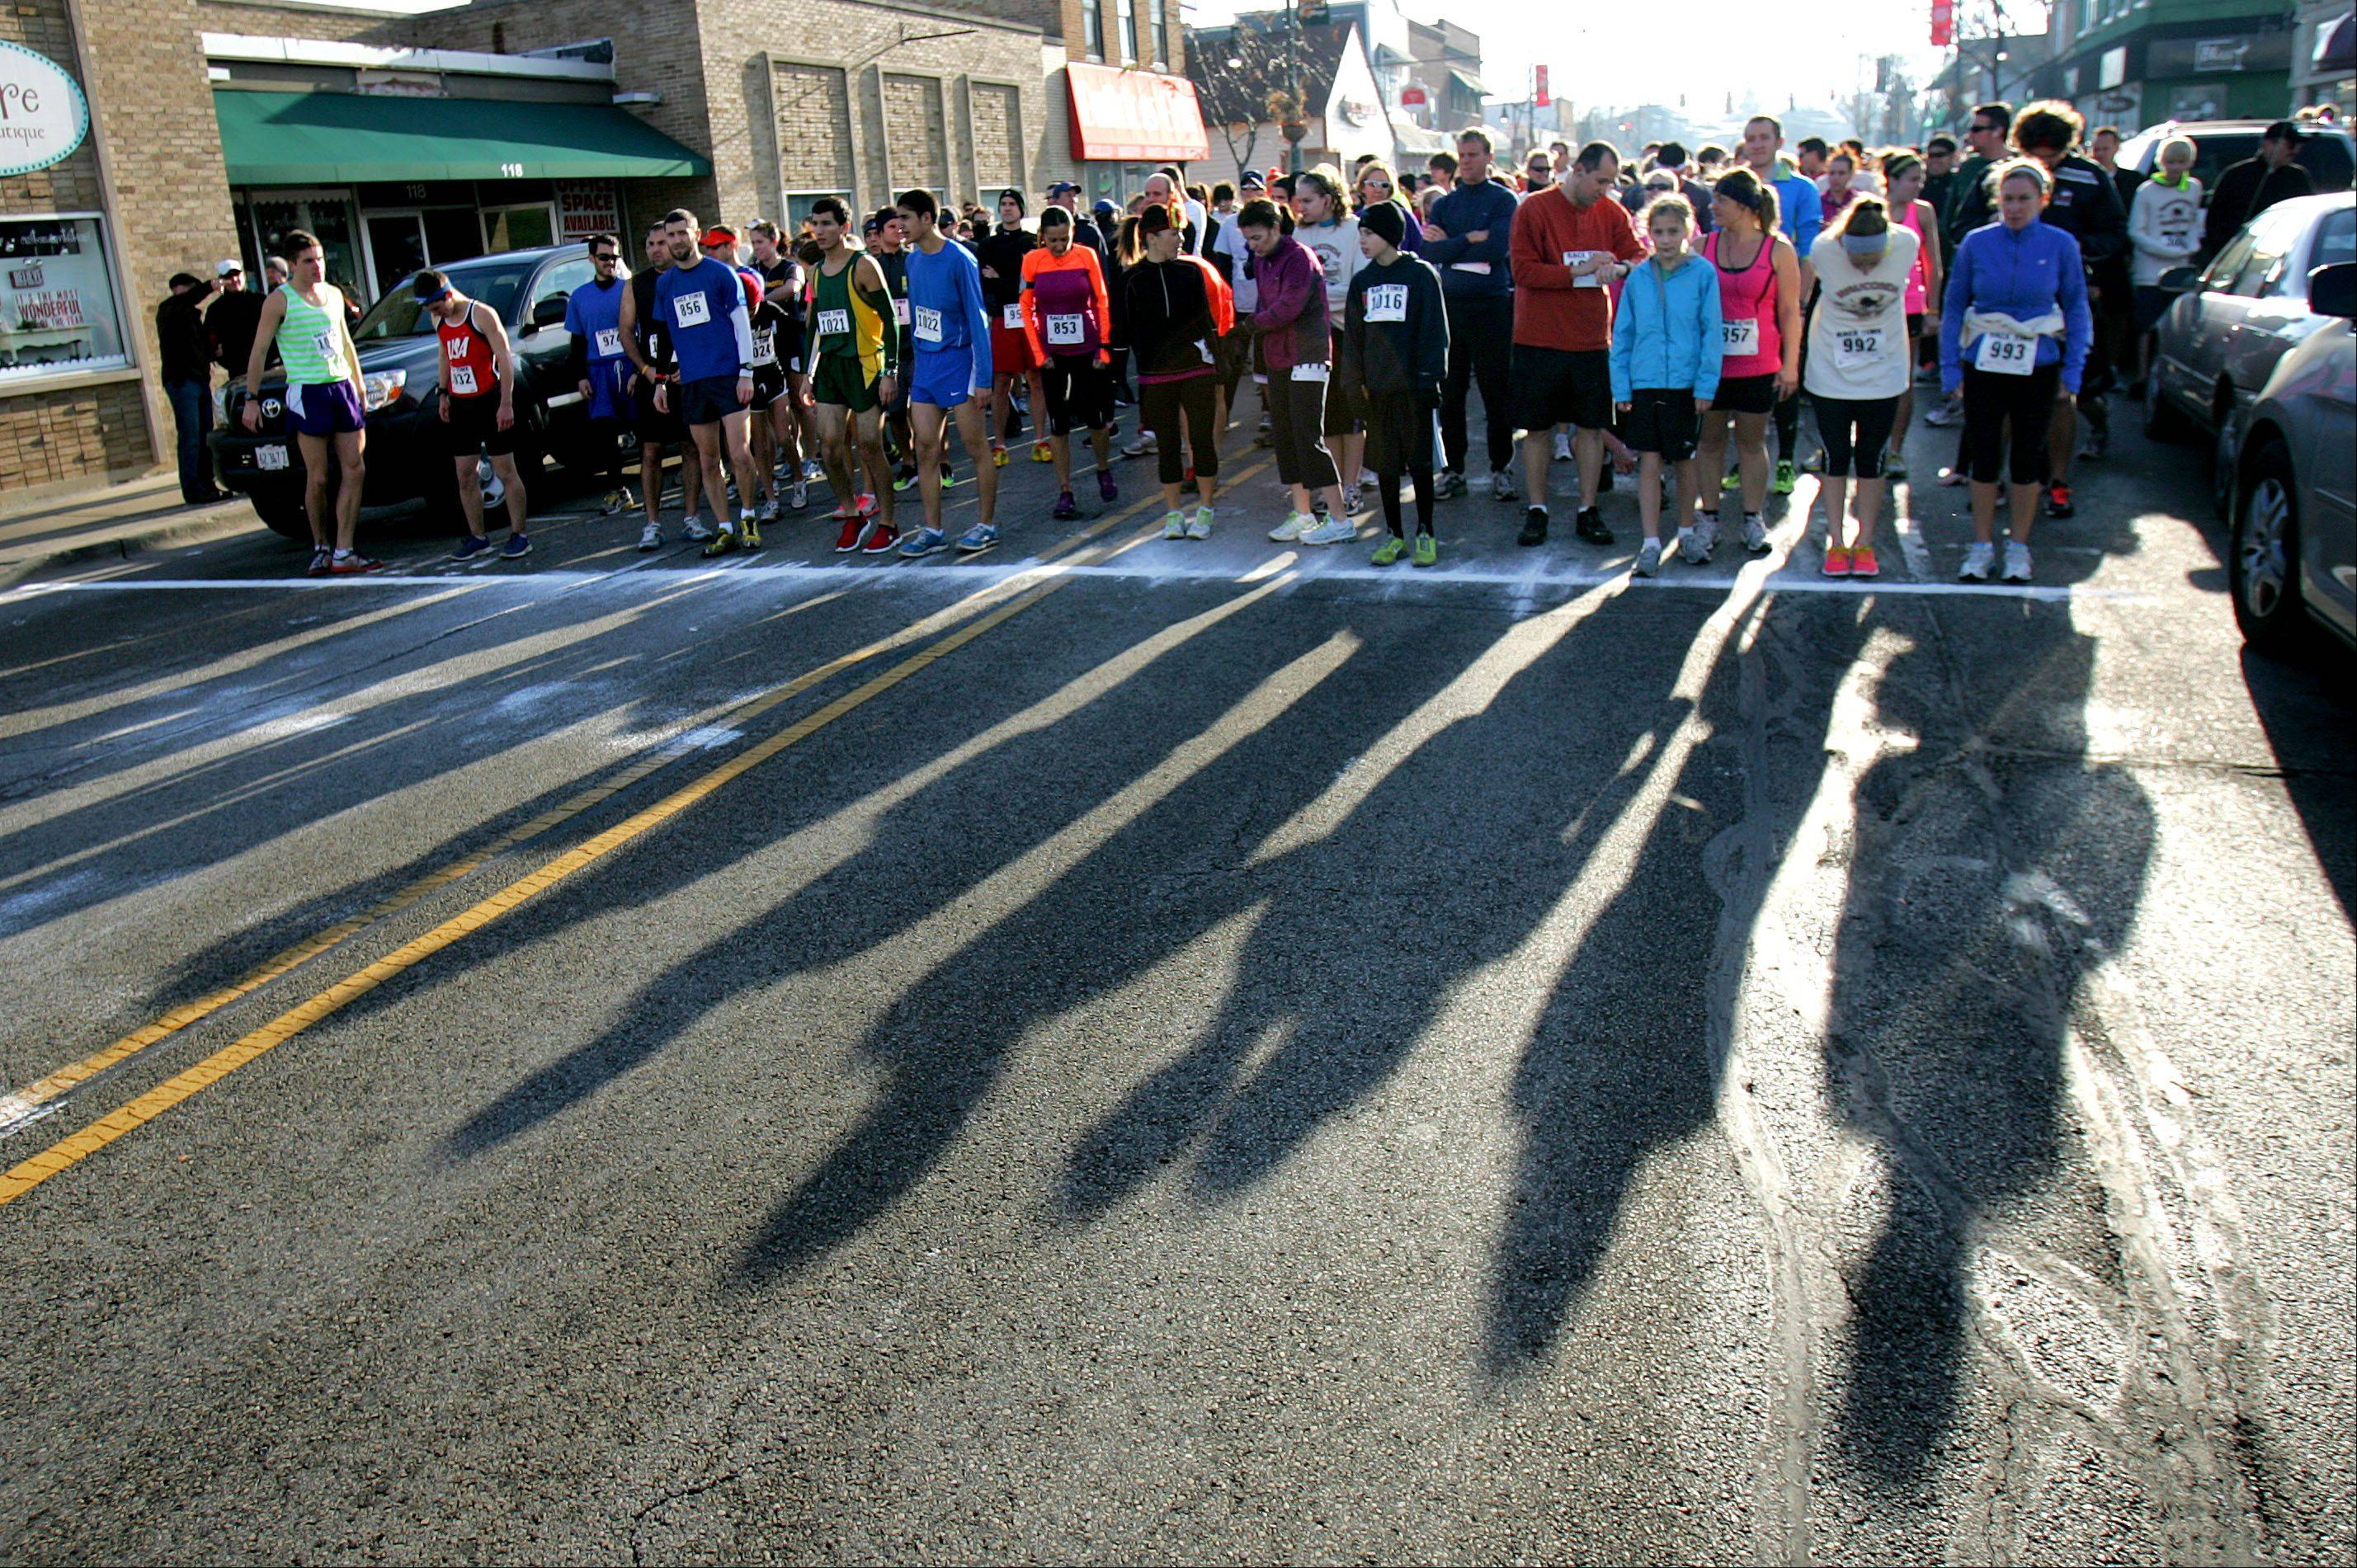 Morning shadows stretch down Main St. in downtown Wauconda as runners prepare for second annual Wauconda Turkey Trot.